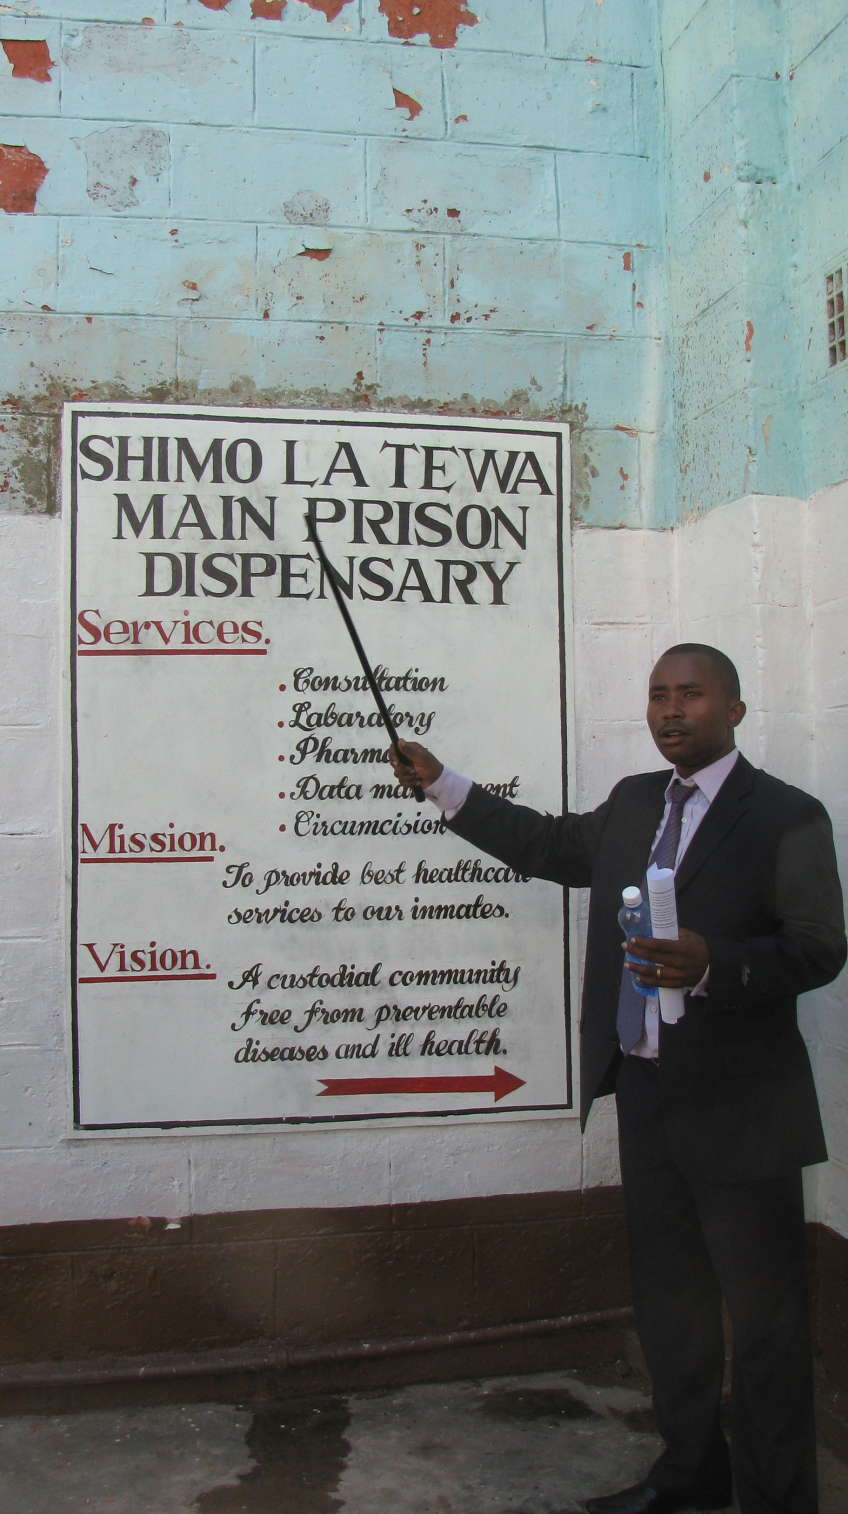 ... cooperation with the Kenya Prison Service, helps to achieve the  standards set in the Mandela Rules, at Rules 24, 25 and 26. It also,  through its method ...